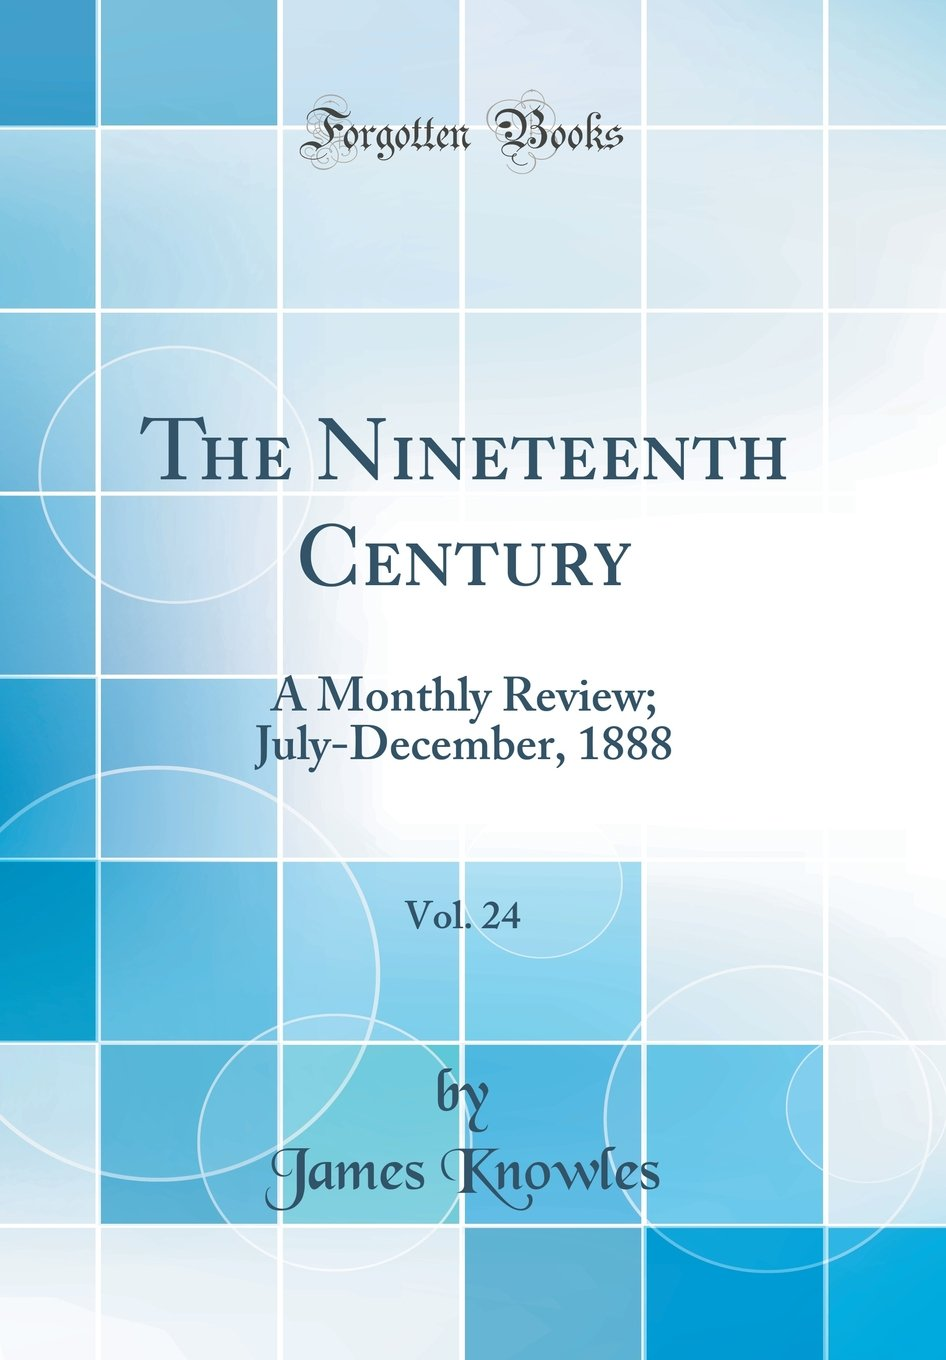 Download The Nineteenth Century, Vol. 24: A Monthly Review; July-December, 1888 (Classic Reprint) PDF